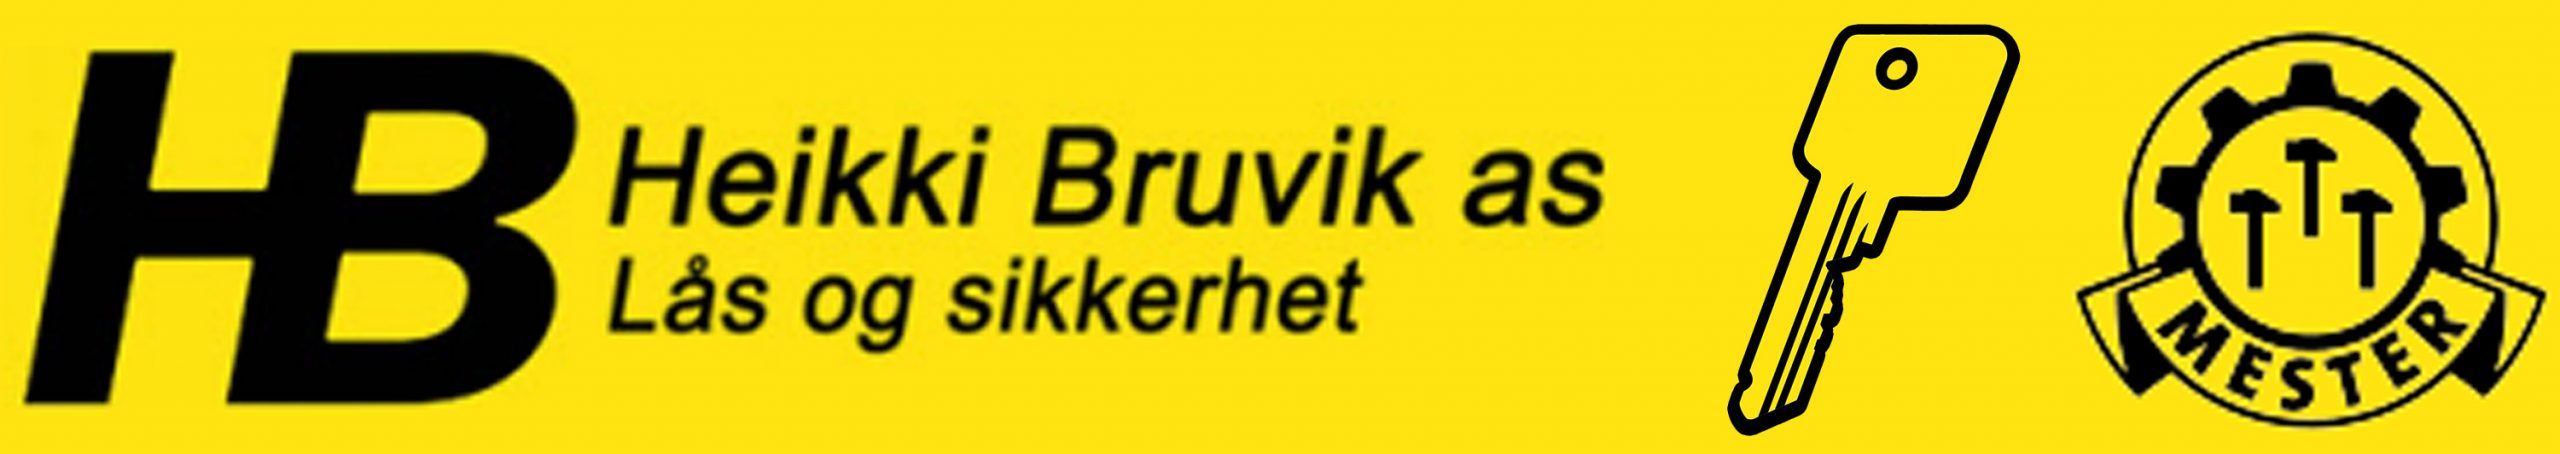 Heikki Bruvik AS